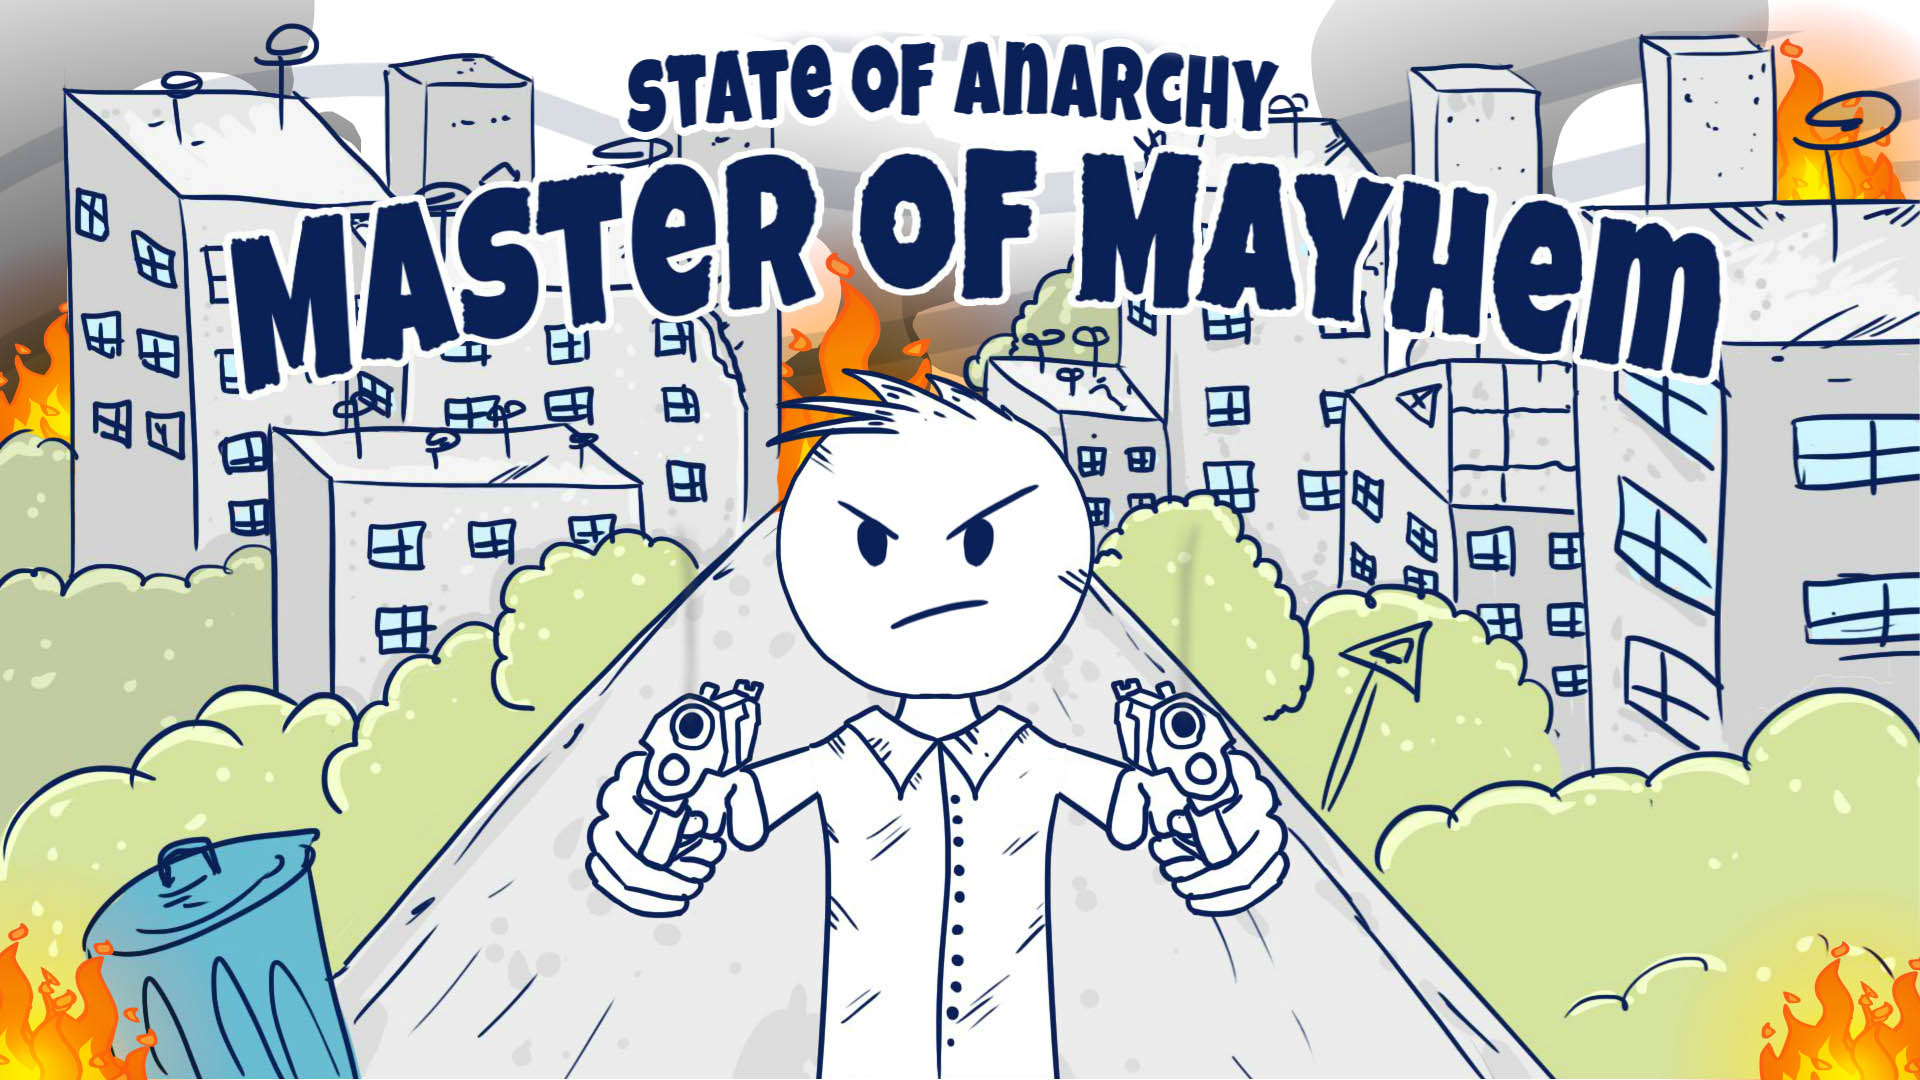 Steam card exchange showcase state of anarchy complete master card 6 of 10artwork master of mayhem malvernweather Gallery